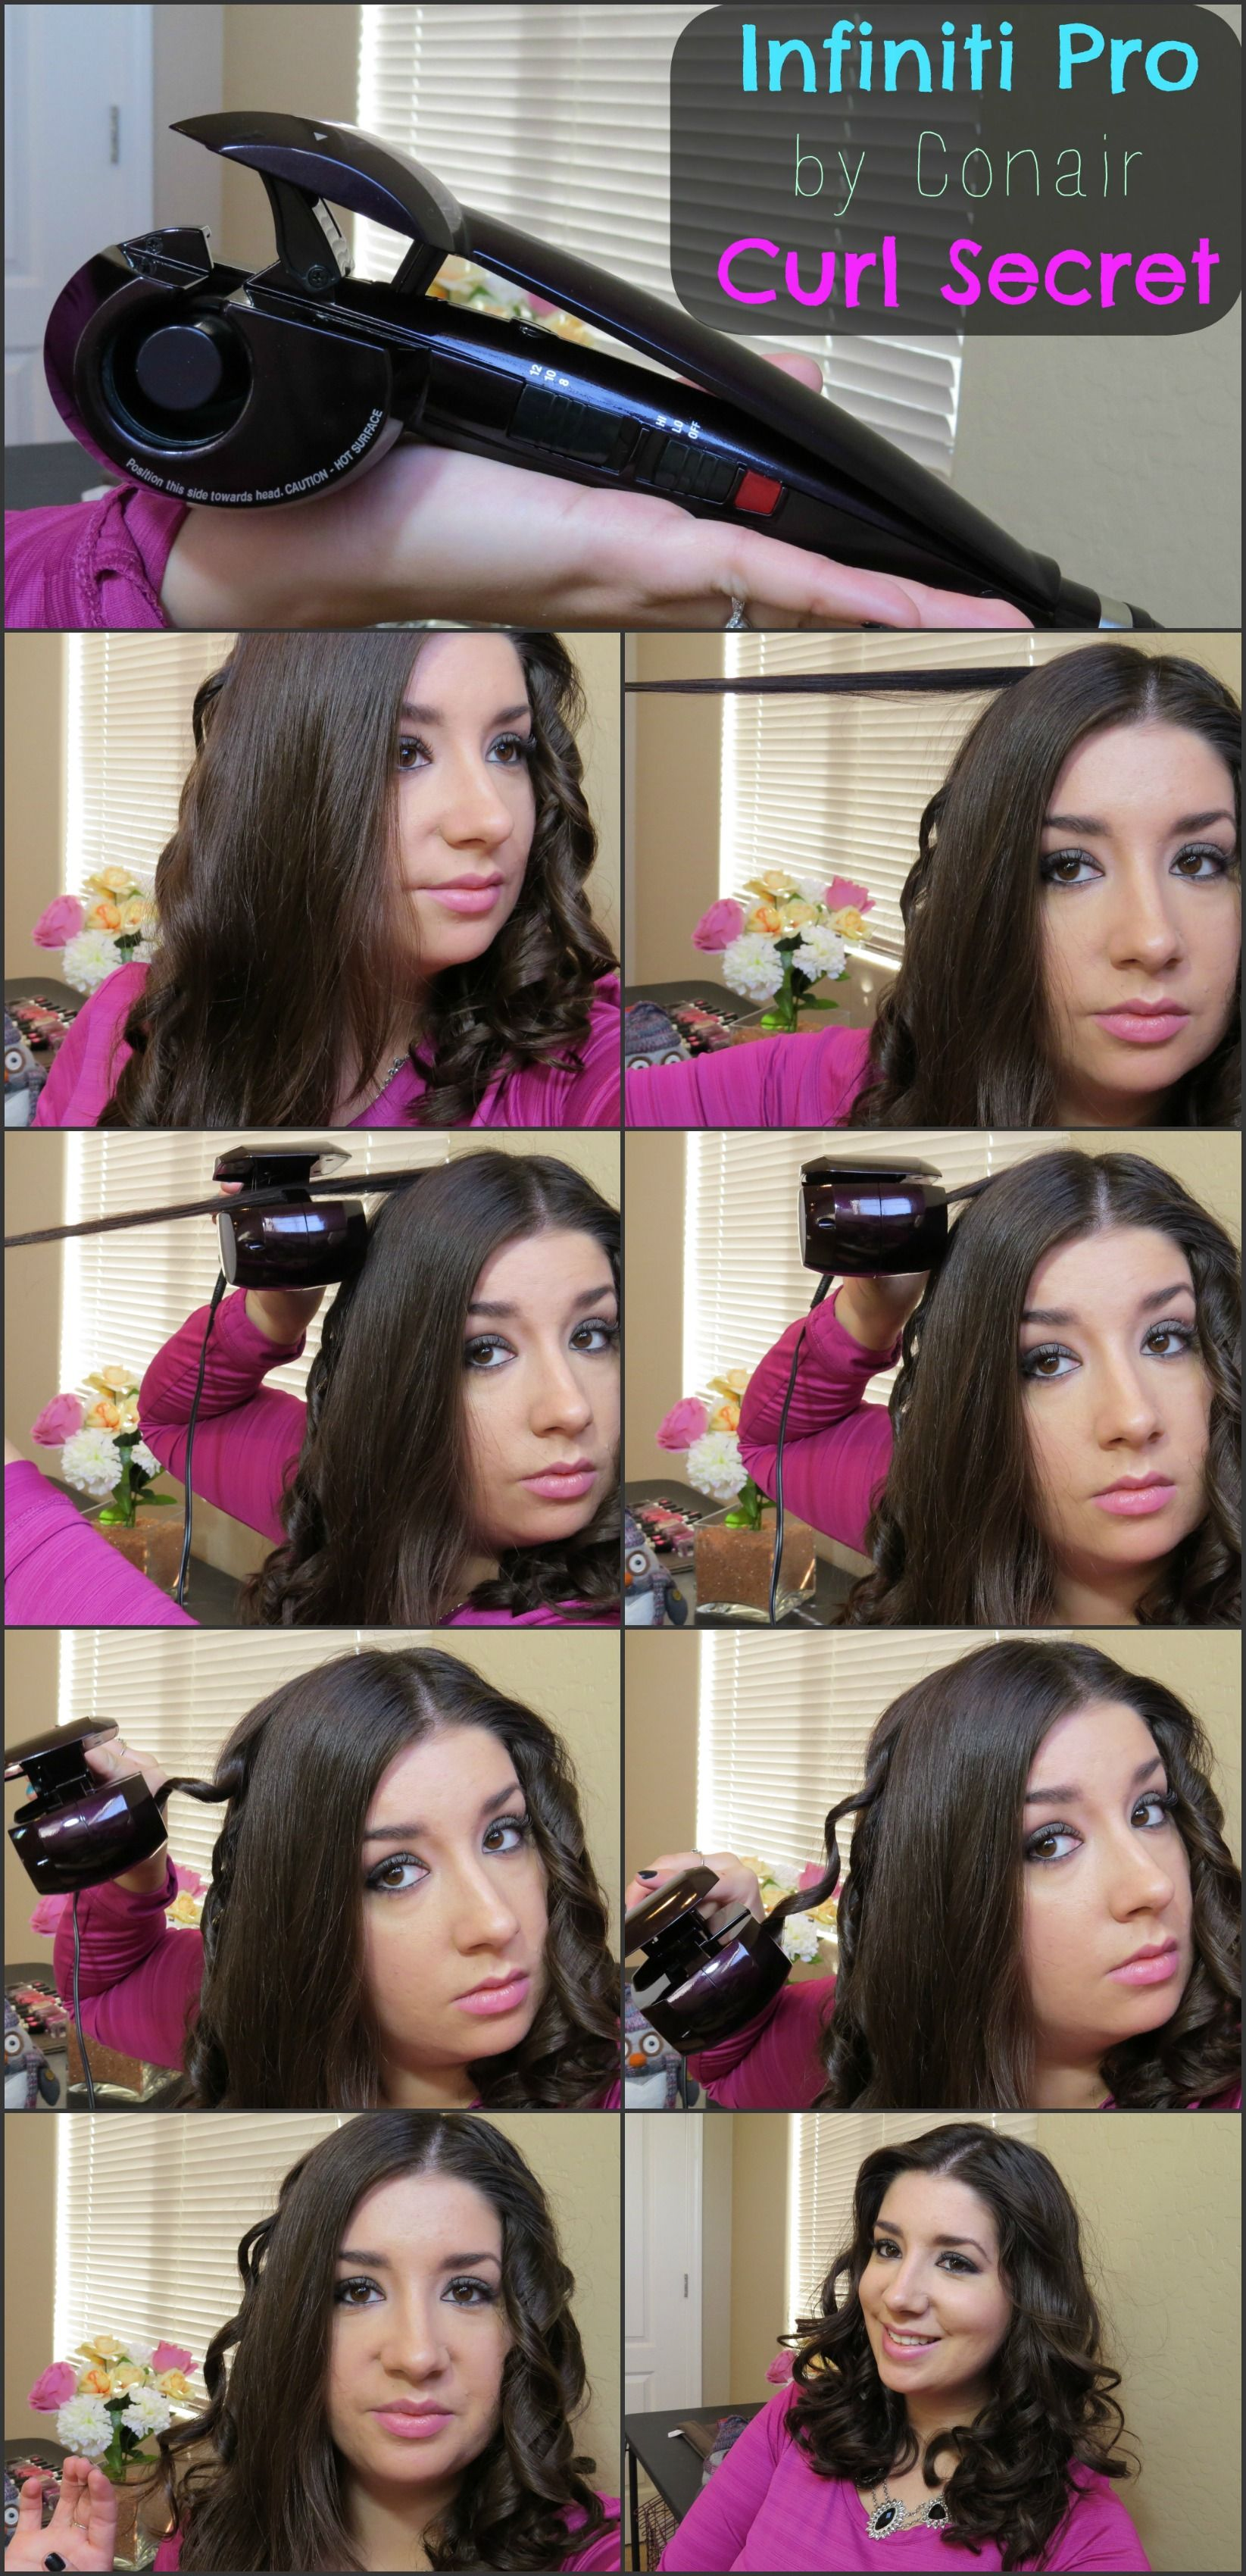 infiniti demo sparkle infinity reviews pink review curl pro watch me secret conair youtube conaircurl